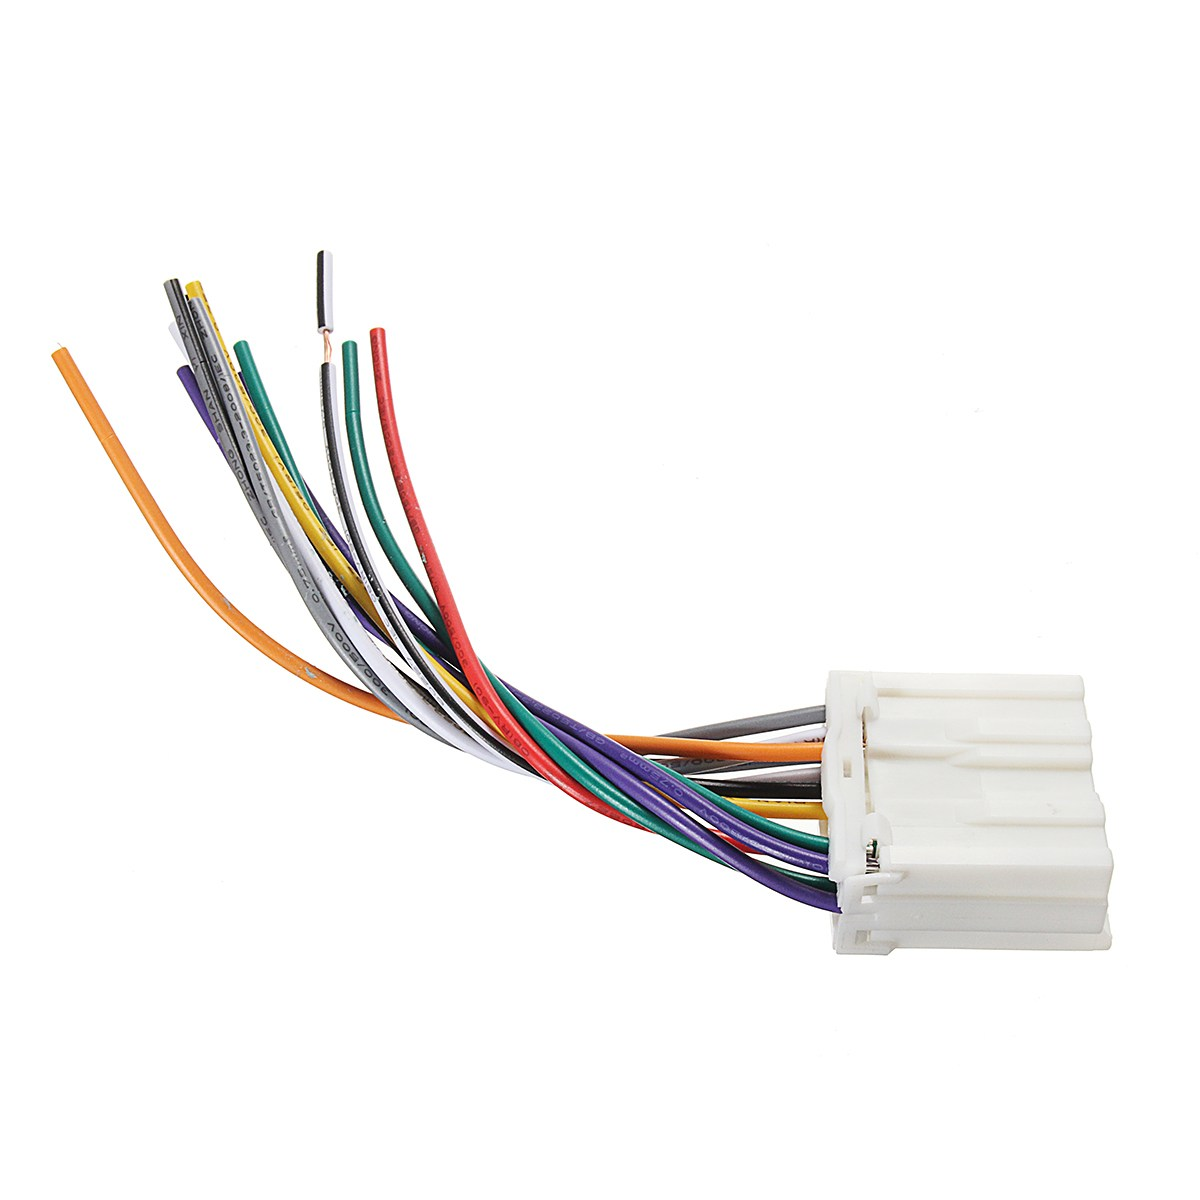 KROAK Car Stereo Radio CD Player Wiring Harness Wire Aftermarket For Mitsubishi/DWH612 wire